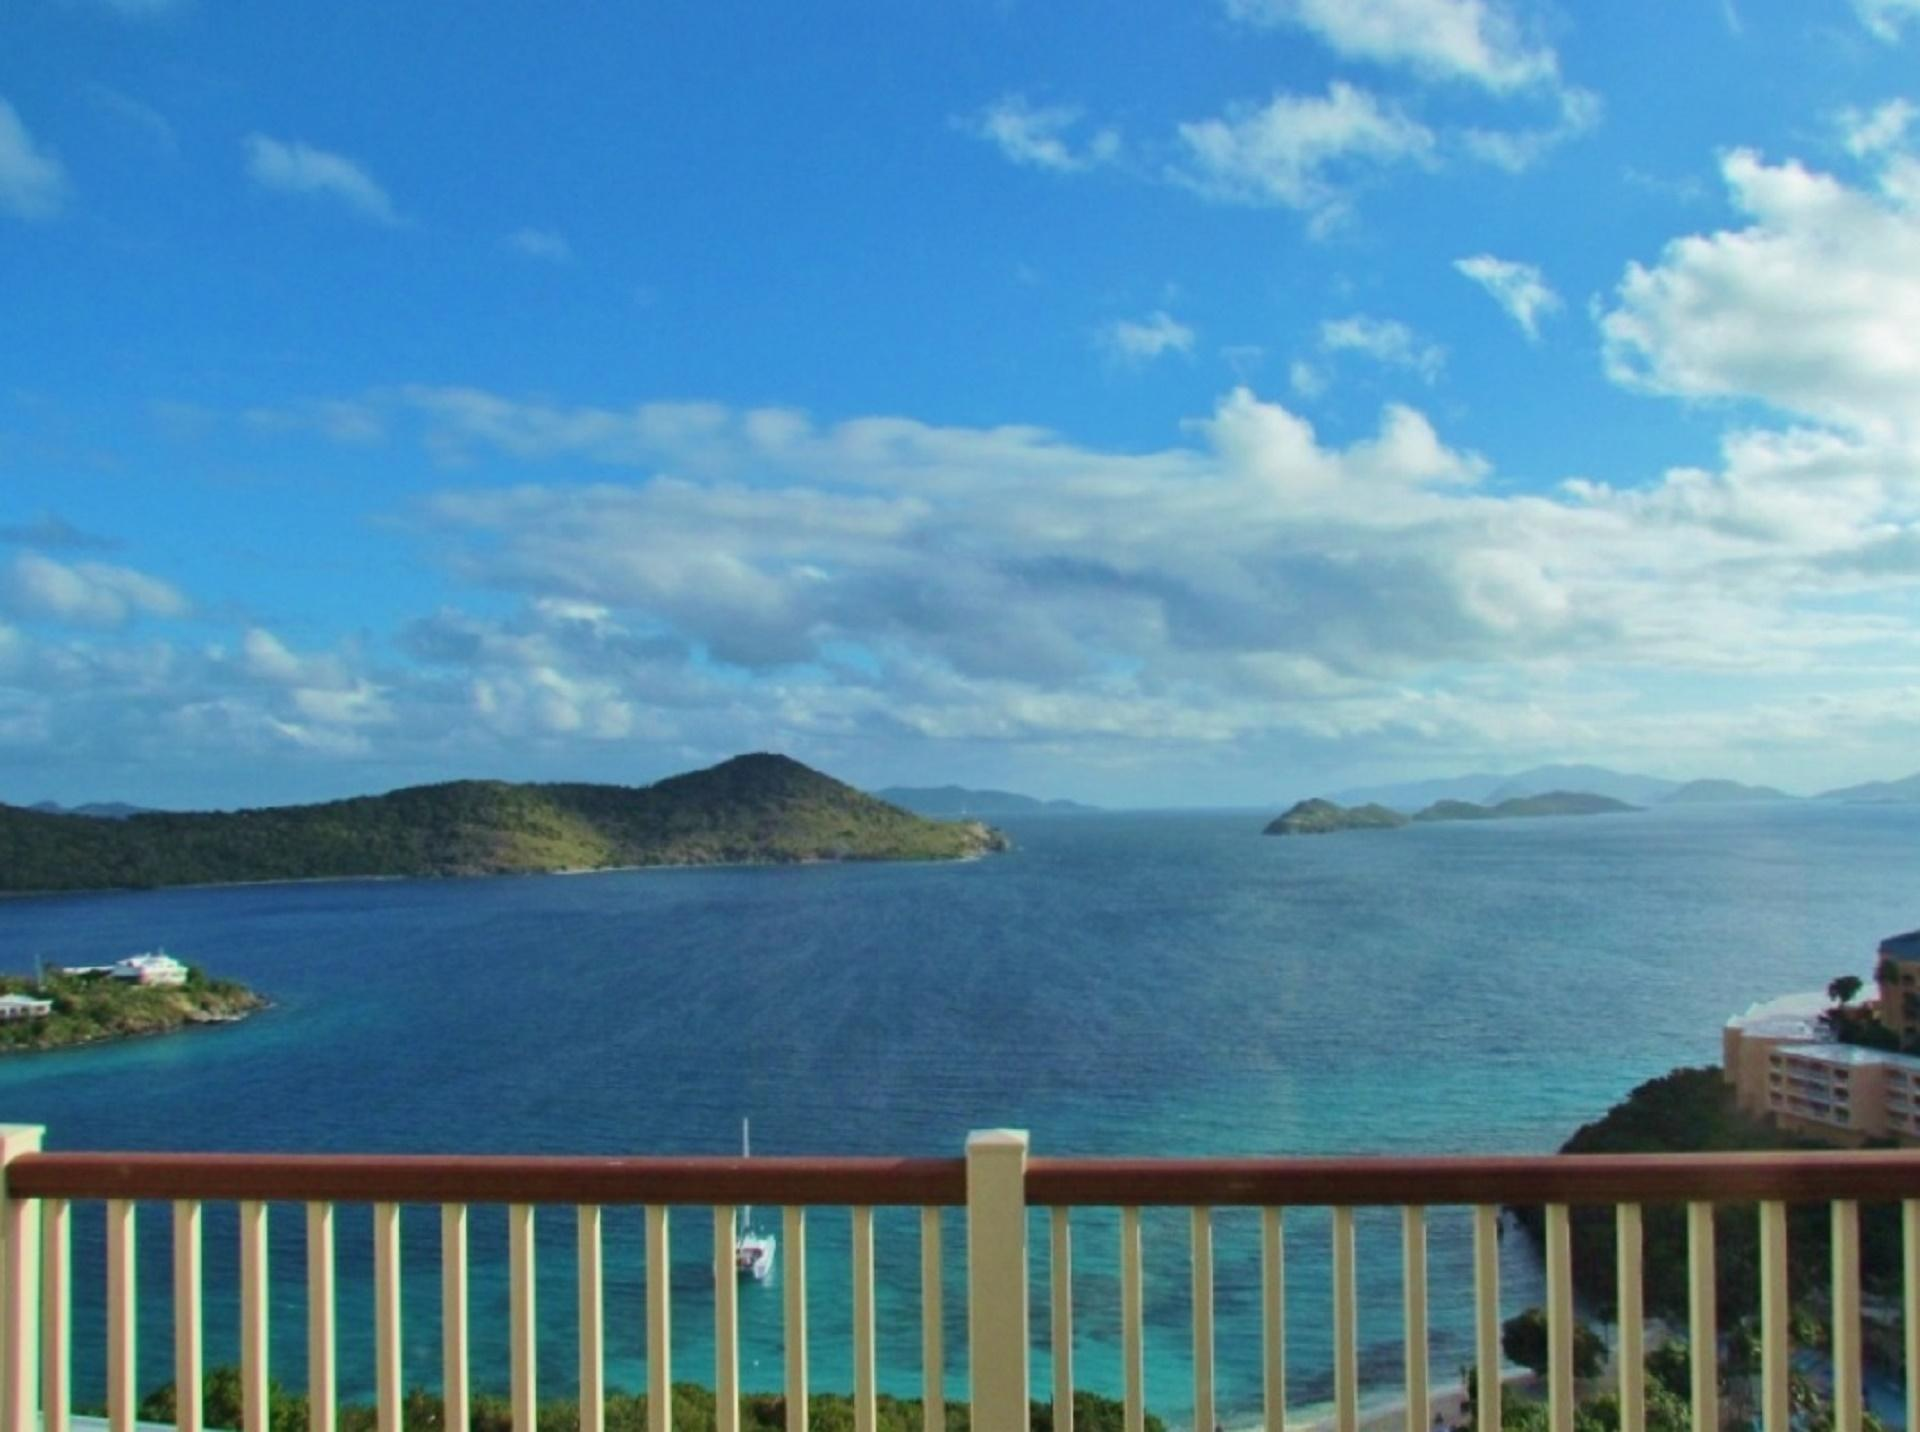 Condominium for Sale at Point Pleasant D15 Smith Bay EE Point Pleasant D15 Smith Bay EE St Thomas, Virgin Islands 00802 United States Virgin Islands